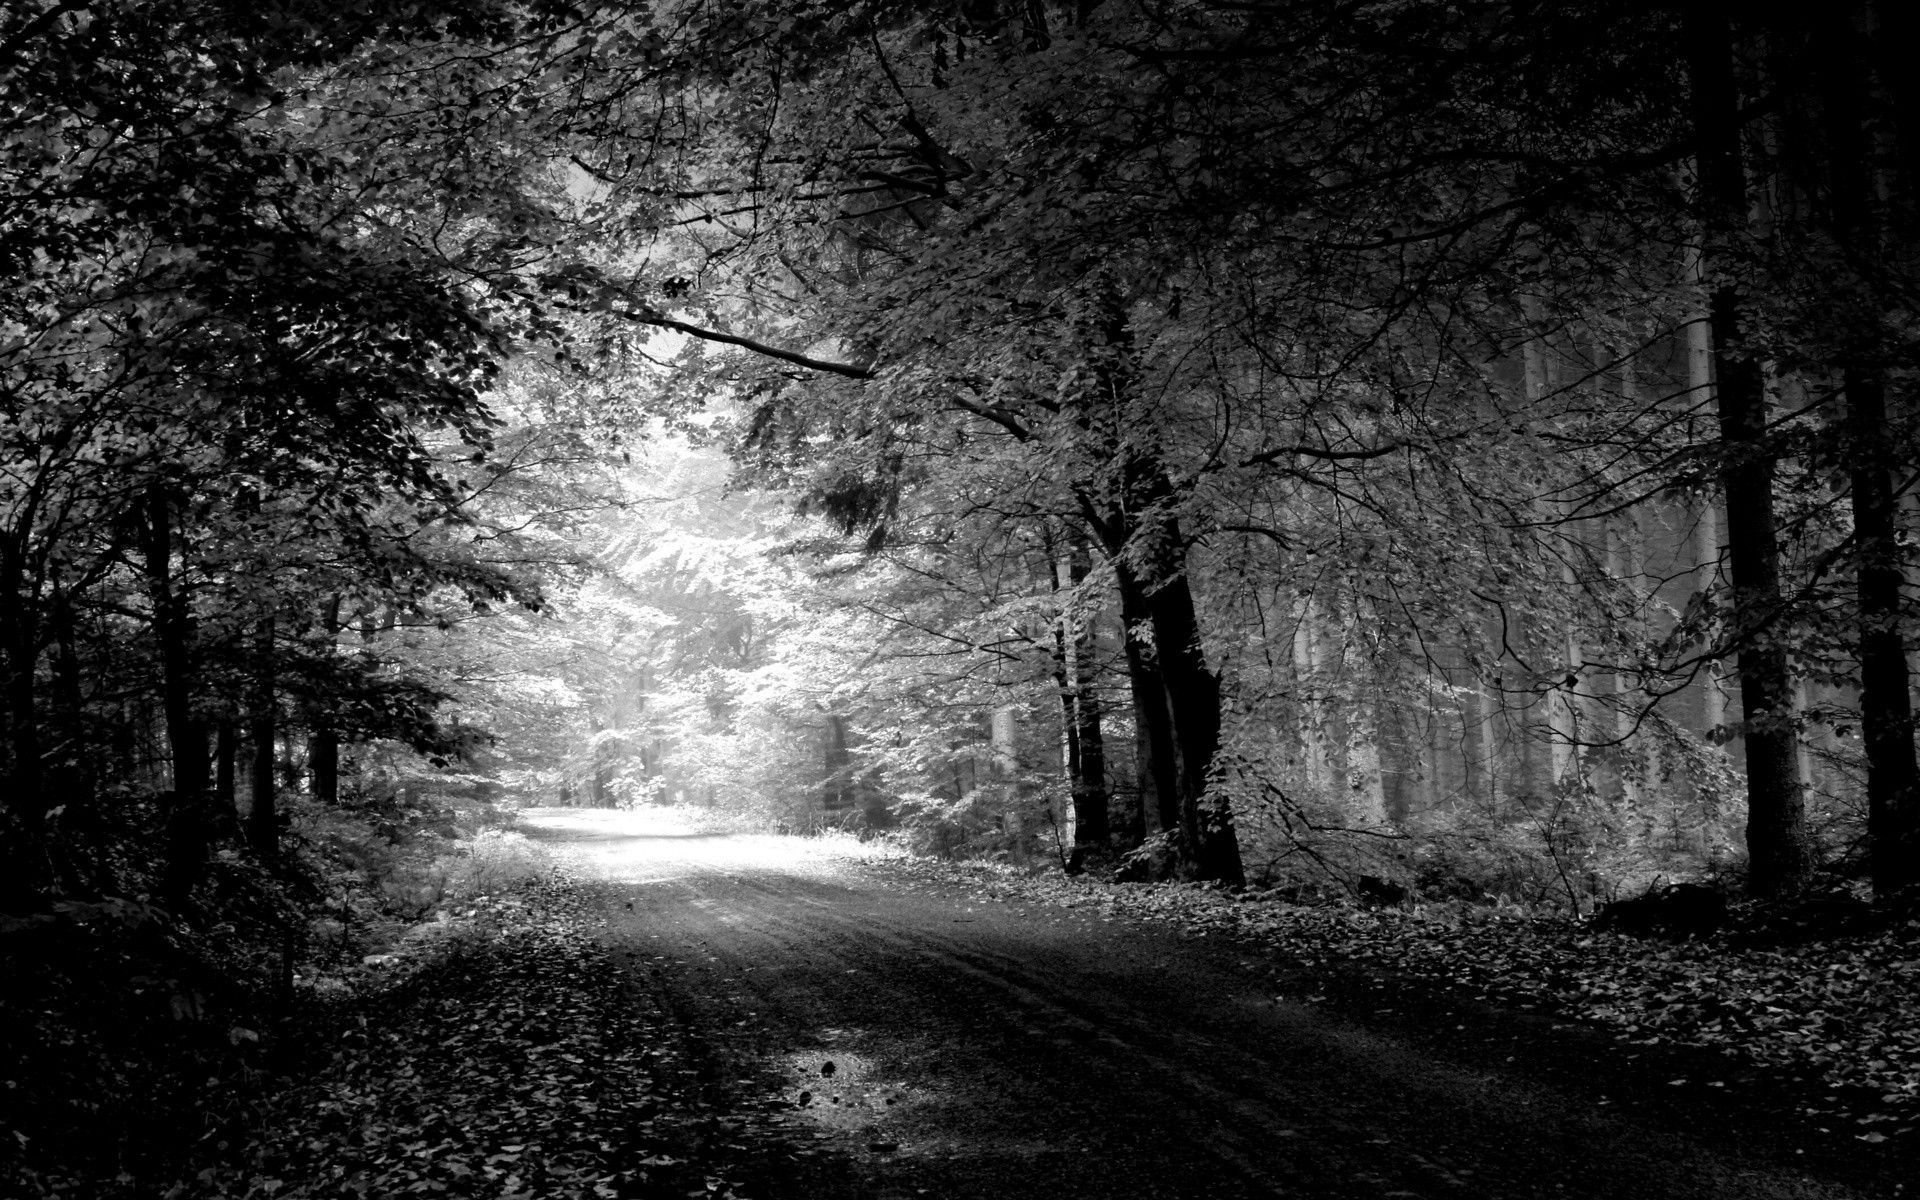 Black In White Nature Hd Wallpapers For Your Desktop Free Download Beautiful Roads Forest Road Nature Wallpaper